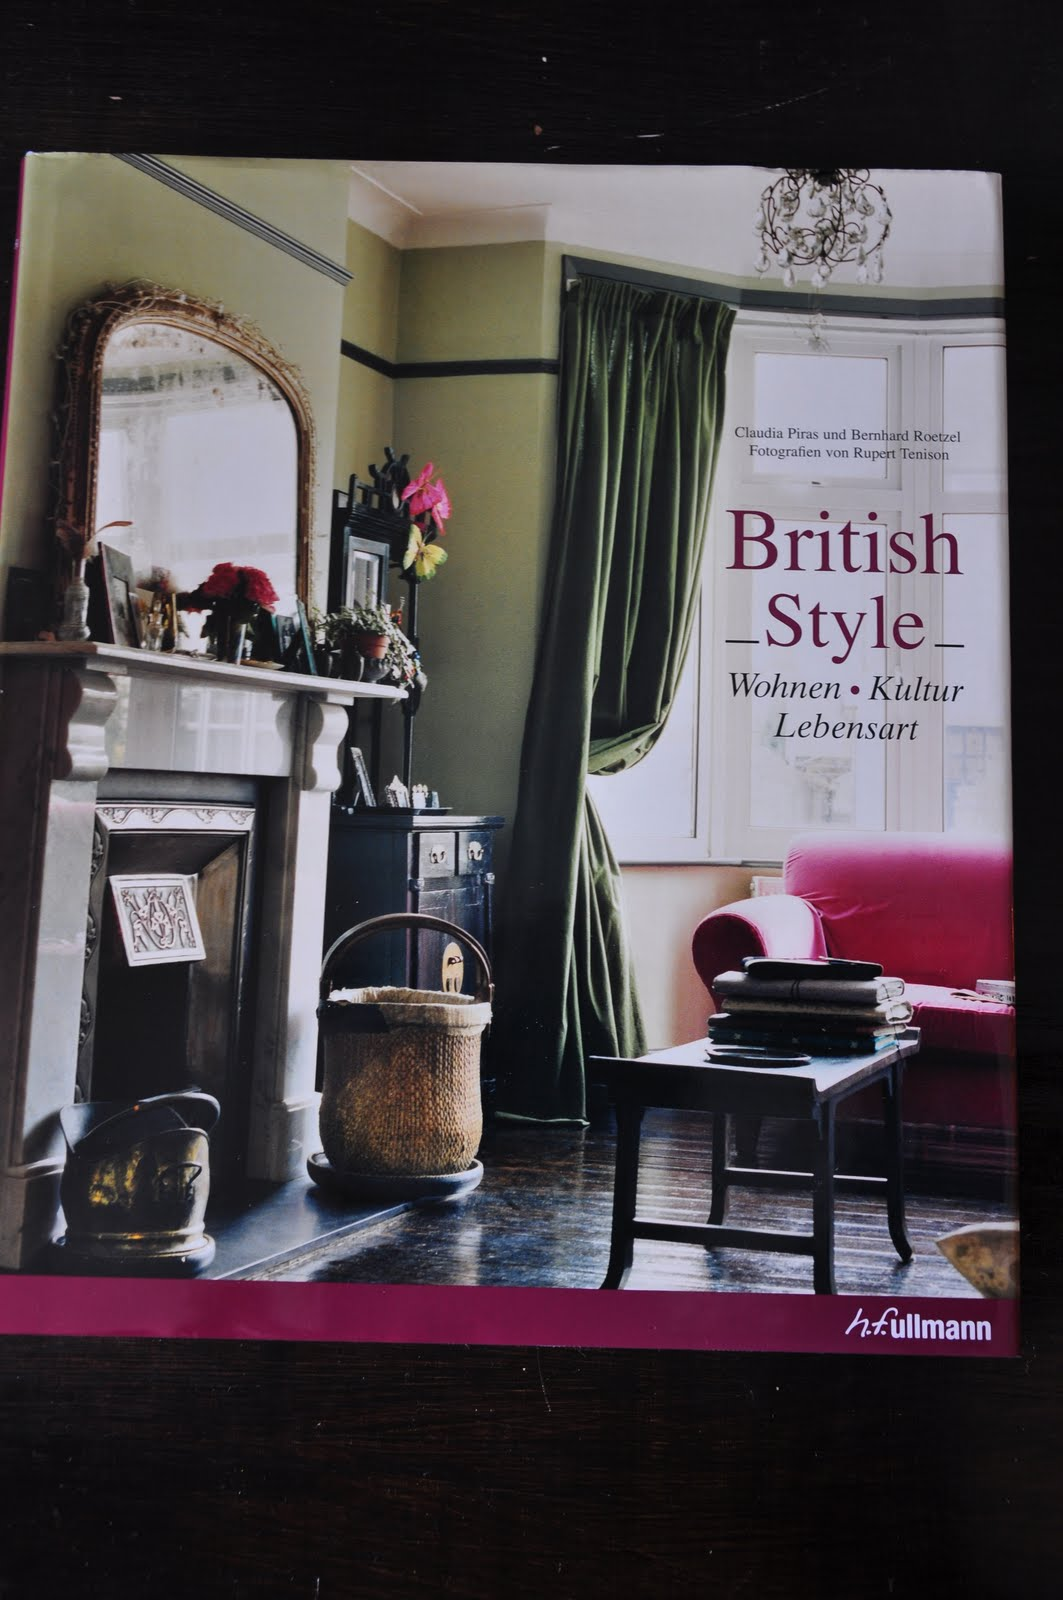 This Book Takes You On A Journey To British Lifestyle And Culture 340 Pages Youll Learn Everything About Britains Architecture History Of Palaces